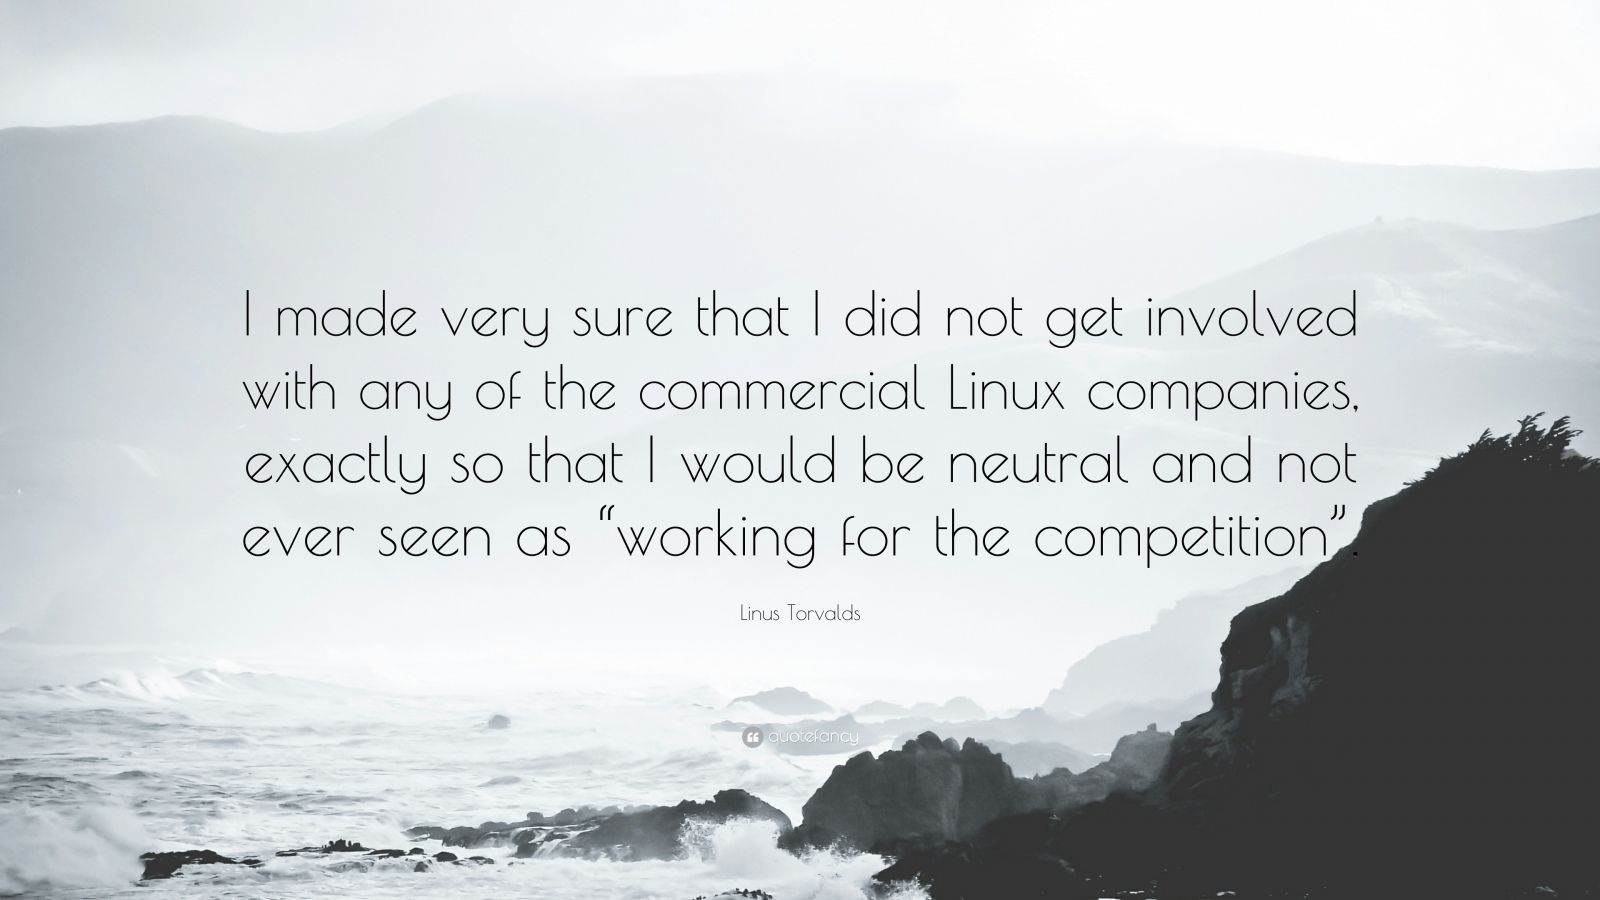 """Linus Torvalds Quote: """"I made very sure that I did not get involved with any of the commercial Linux companies, exactly so that I would be neutral and not ever seen as """"working for the competition""""."""""""